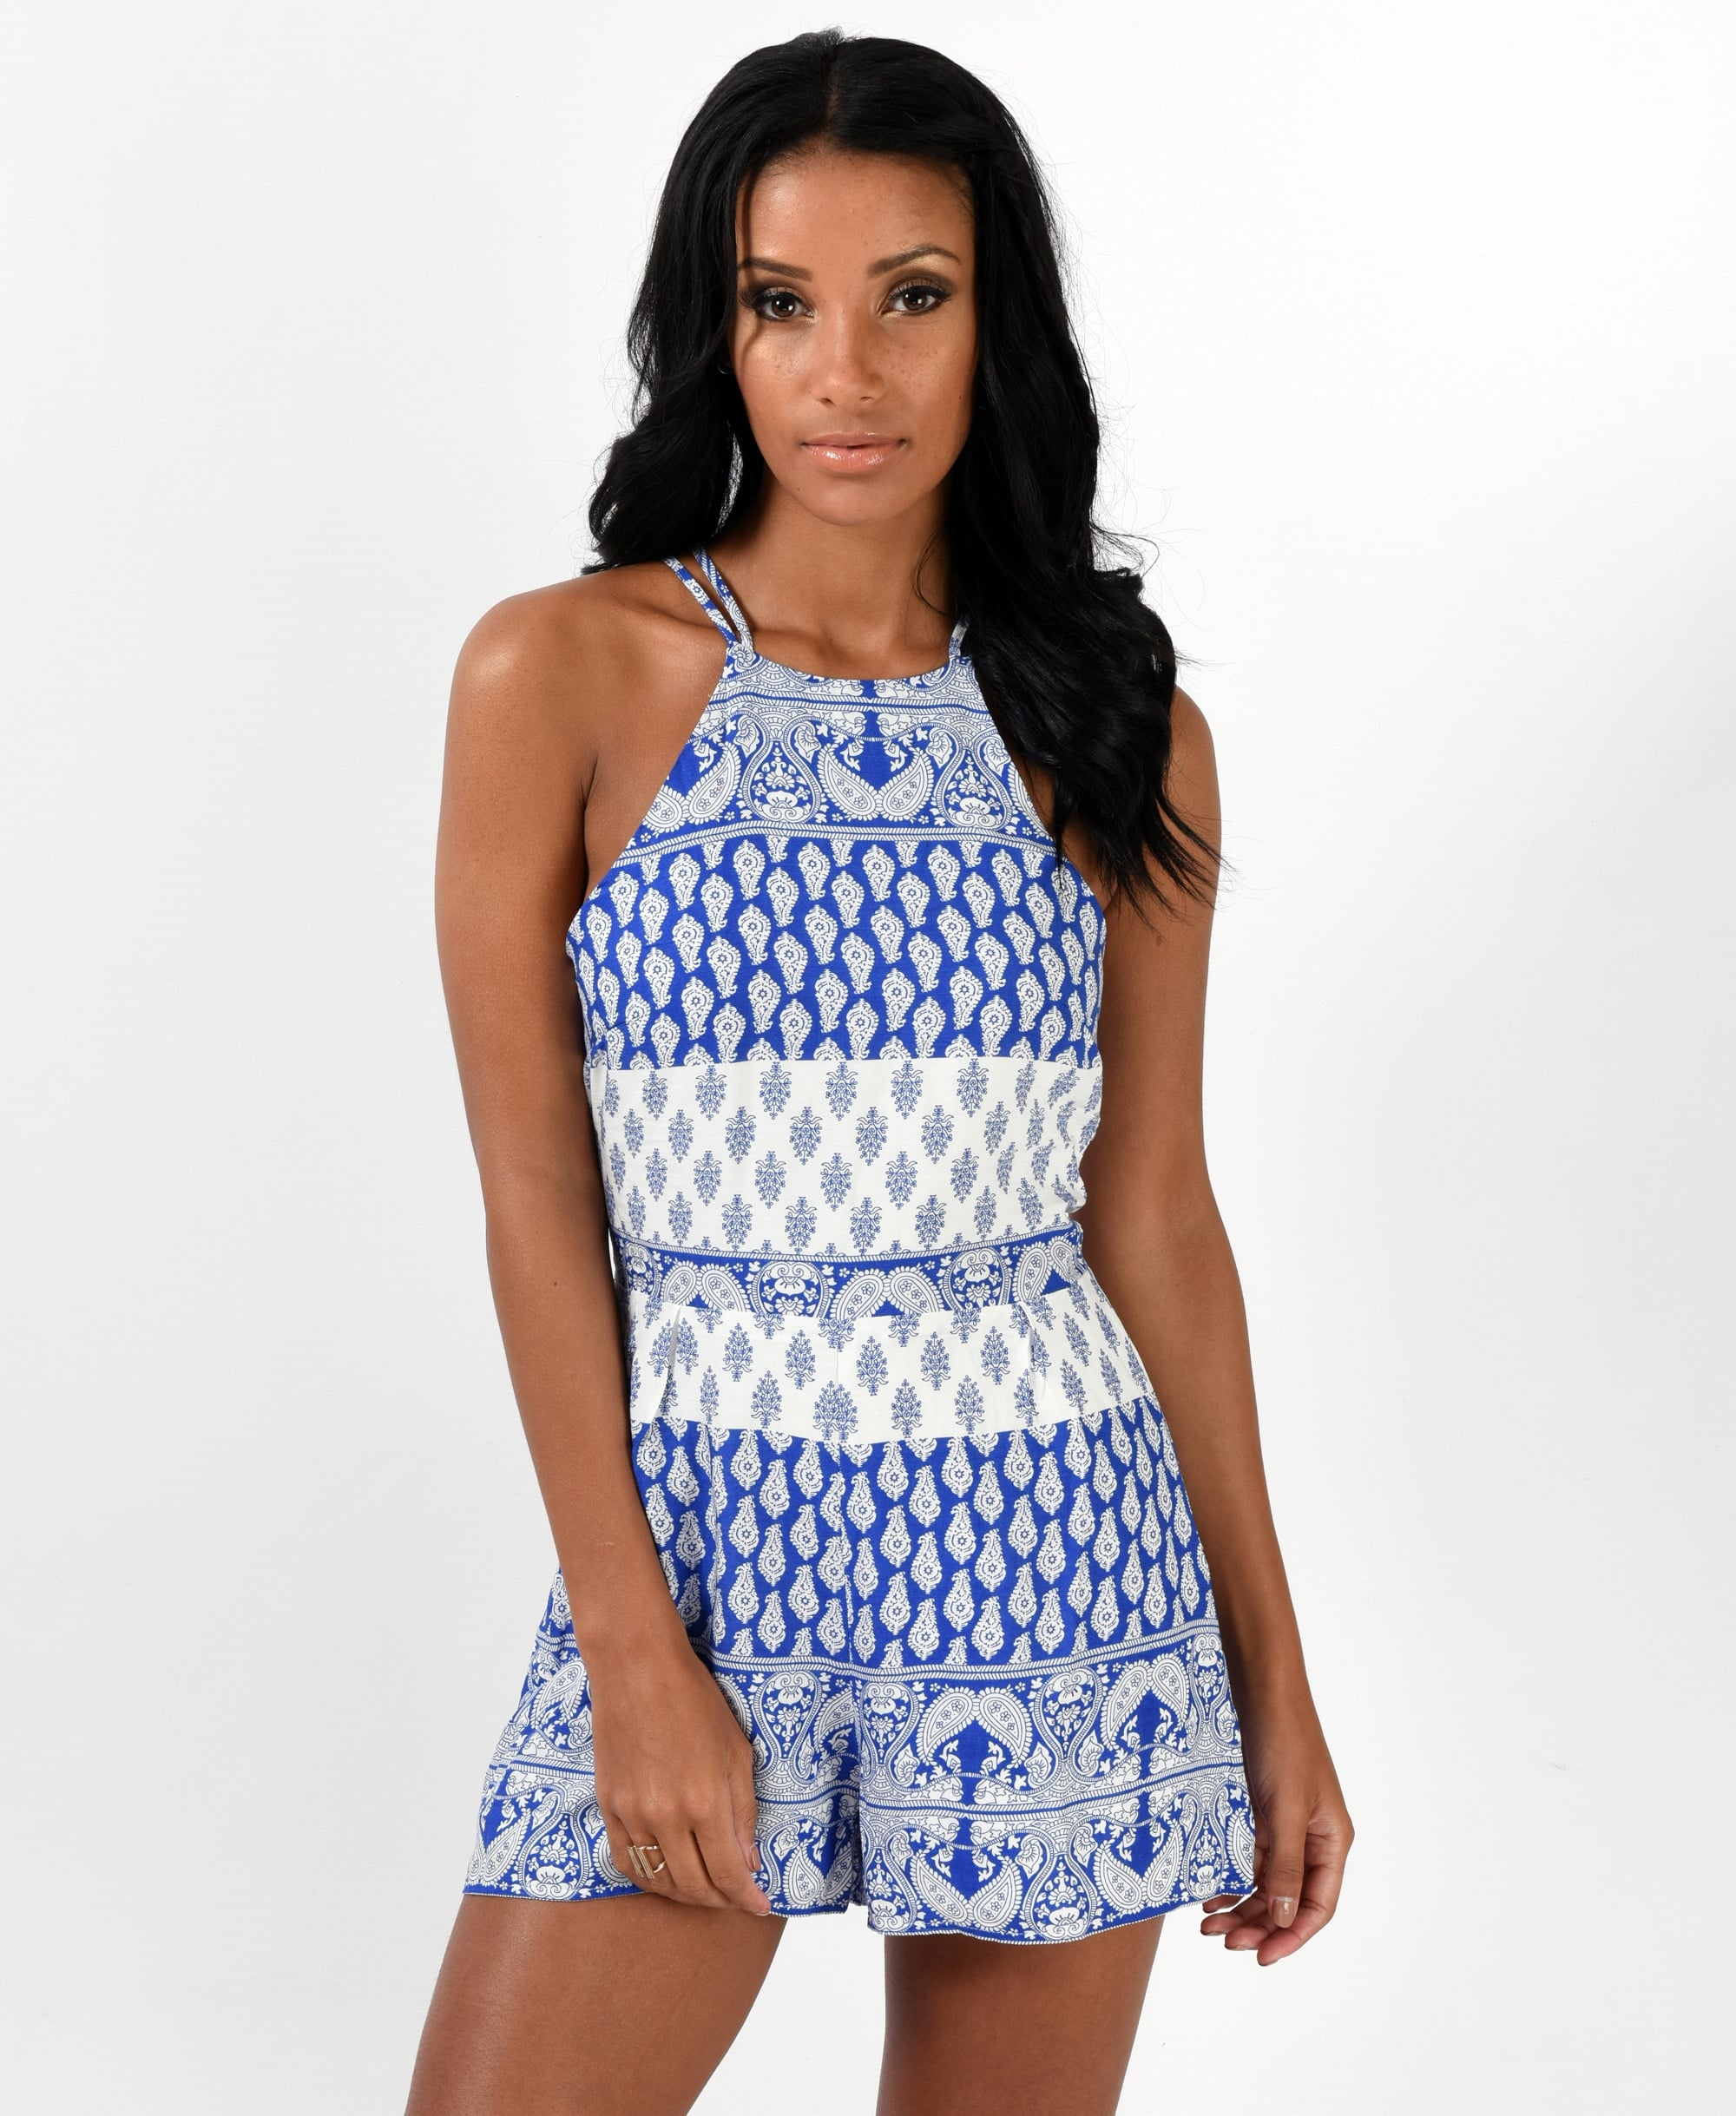 find this pin and more on womens playsuits. JRUCXYU